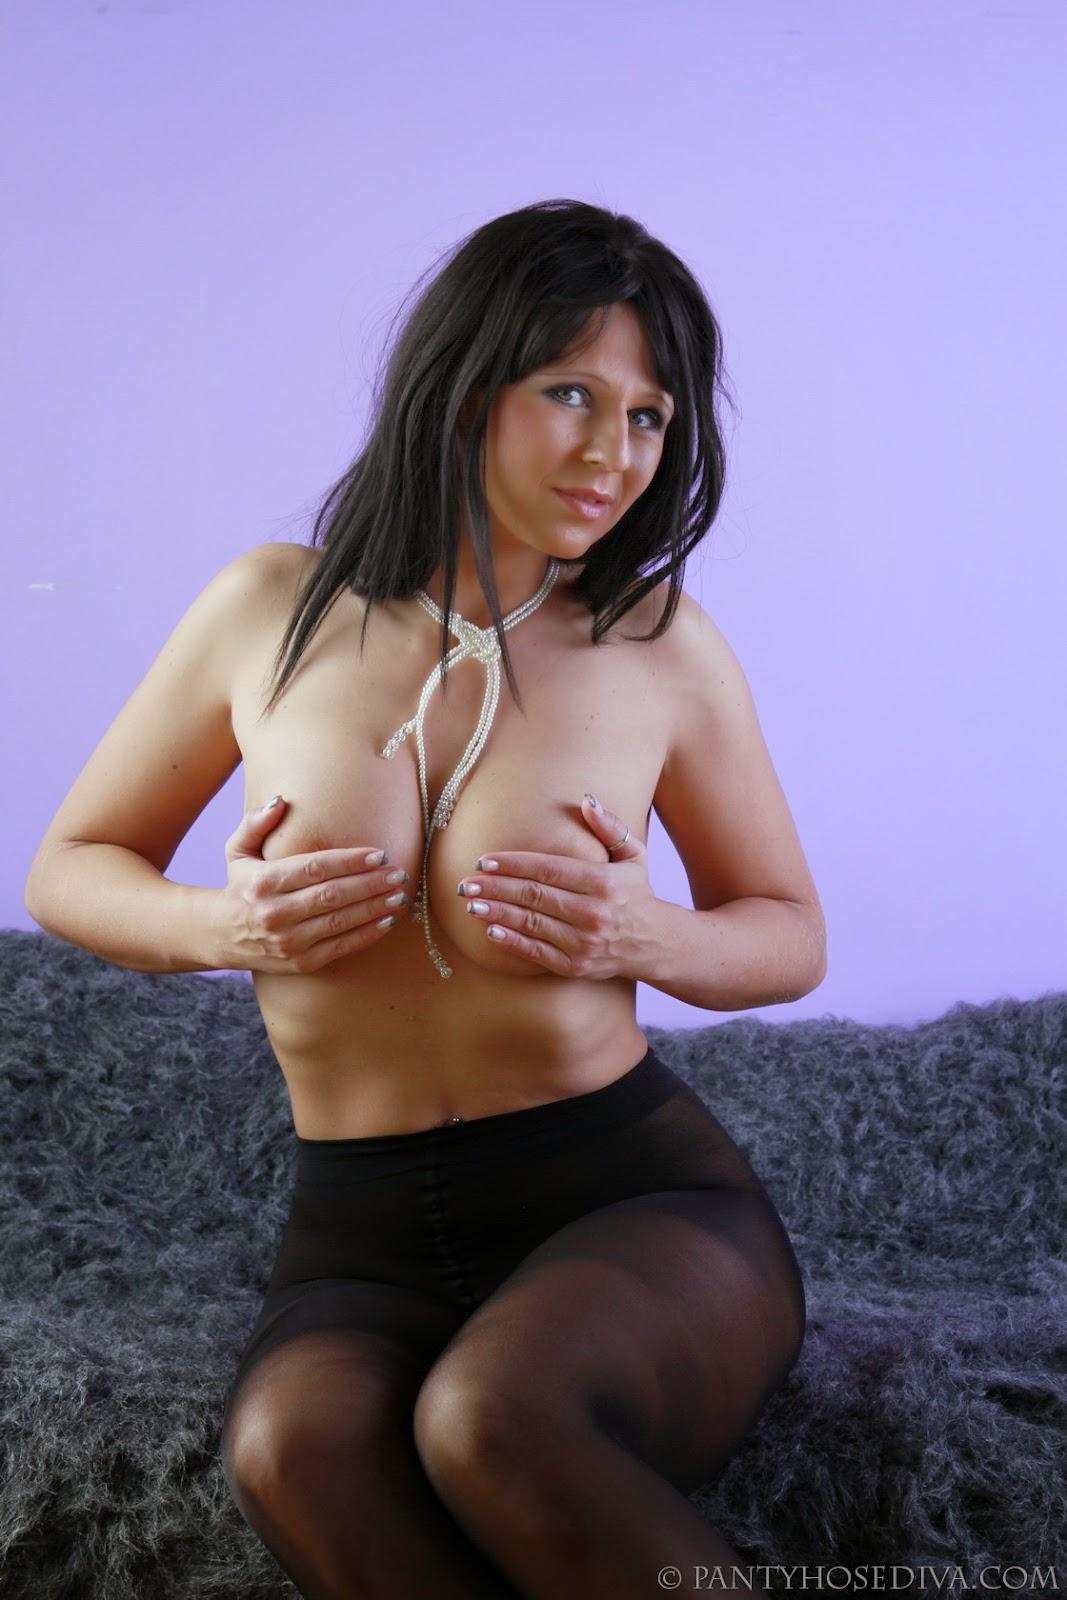 Haired Pantyhose 17